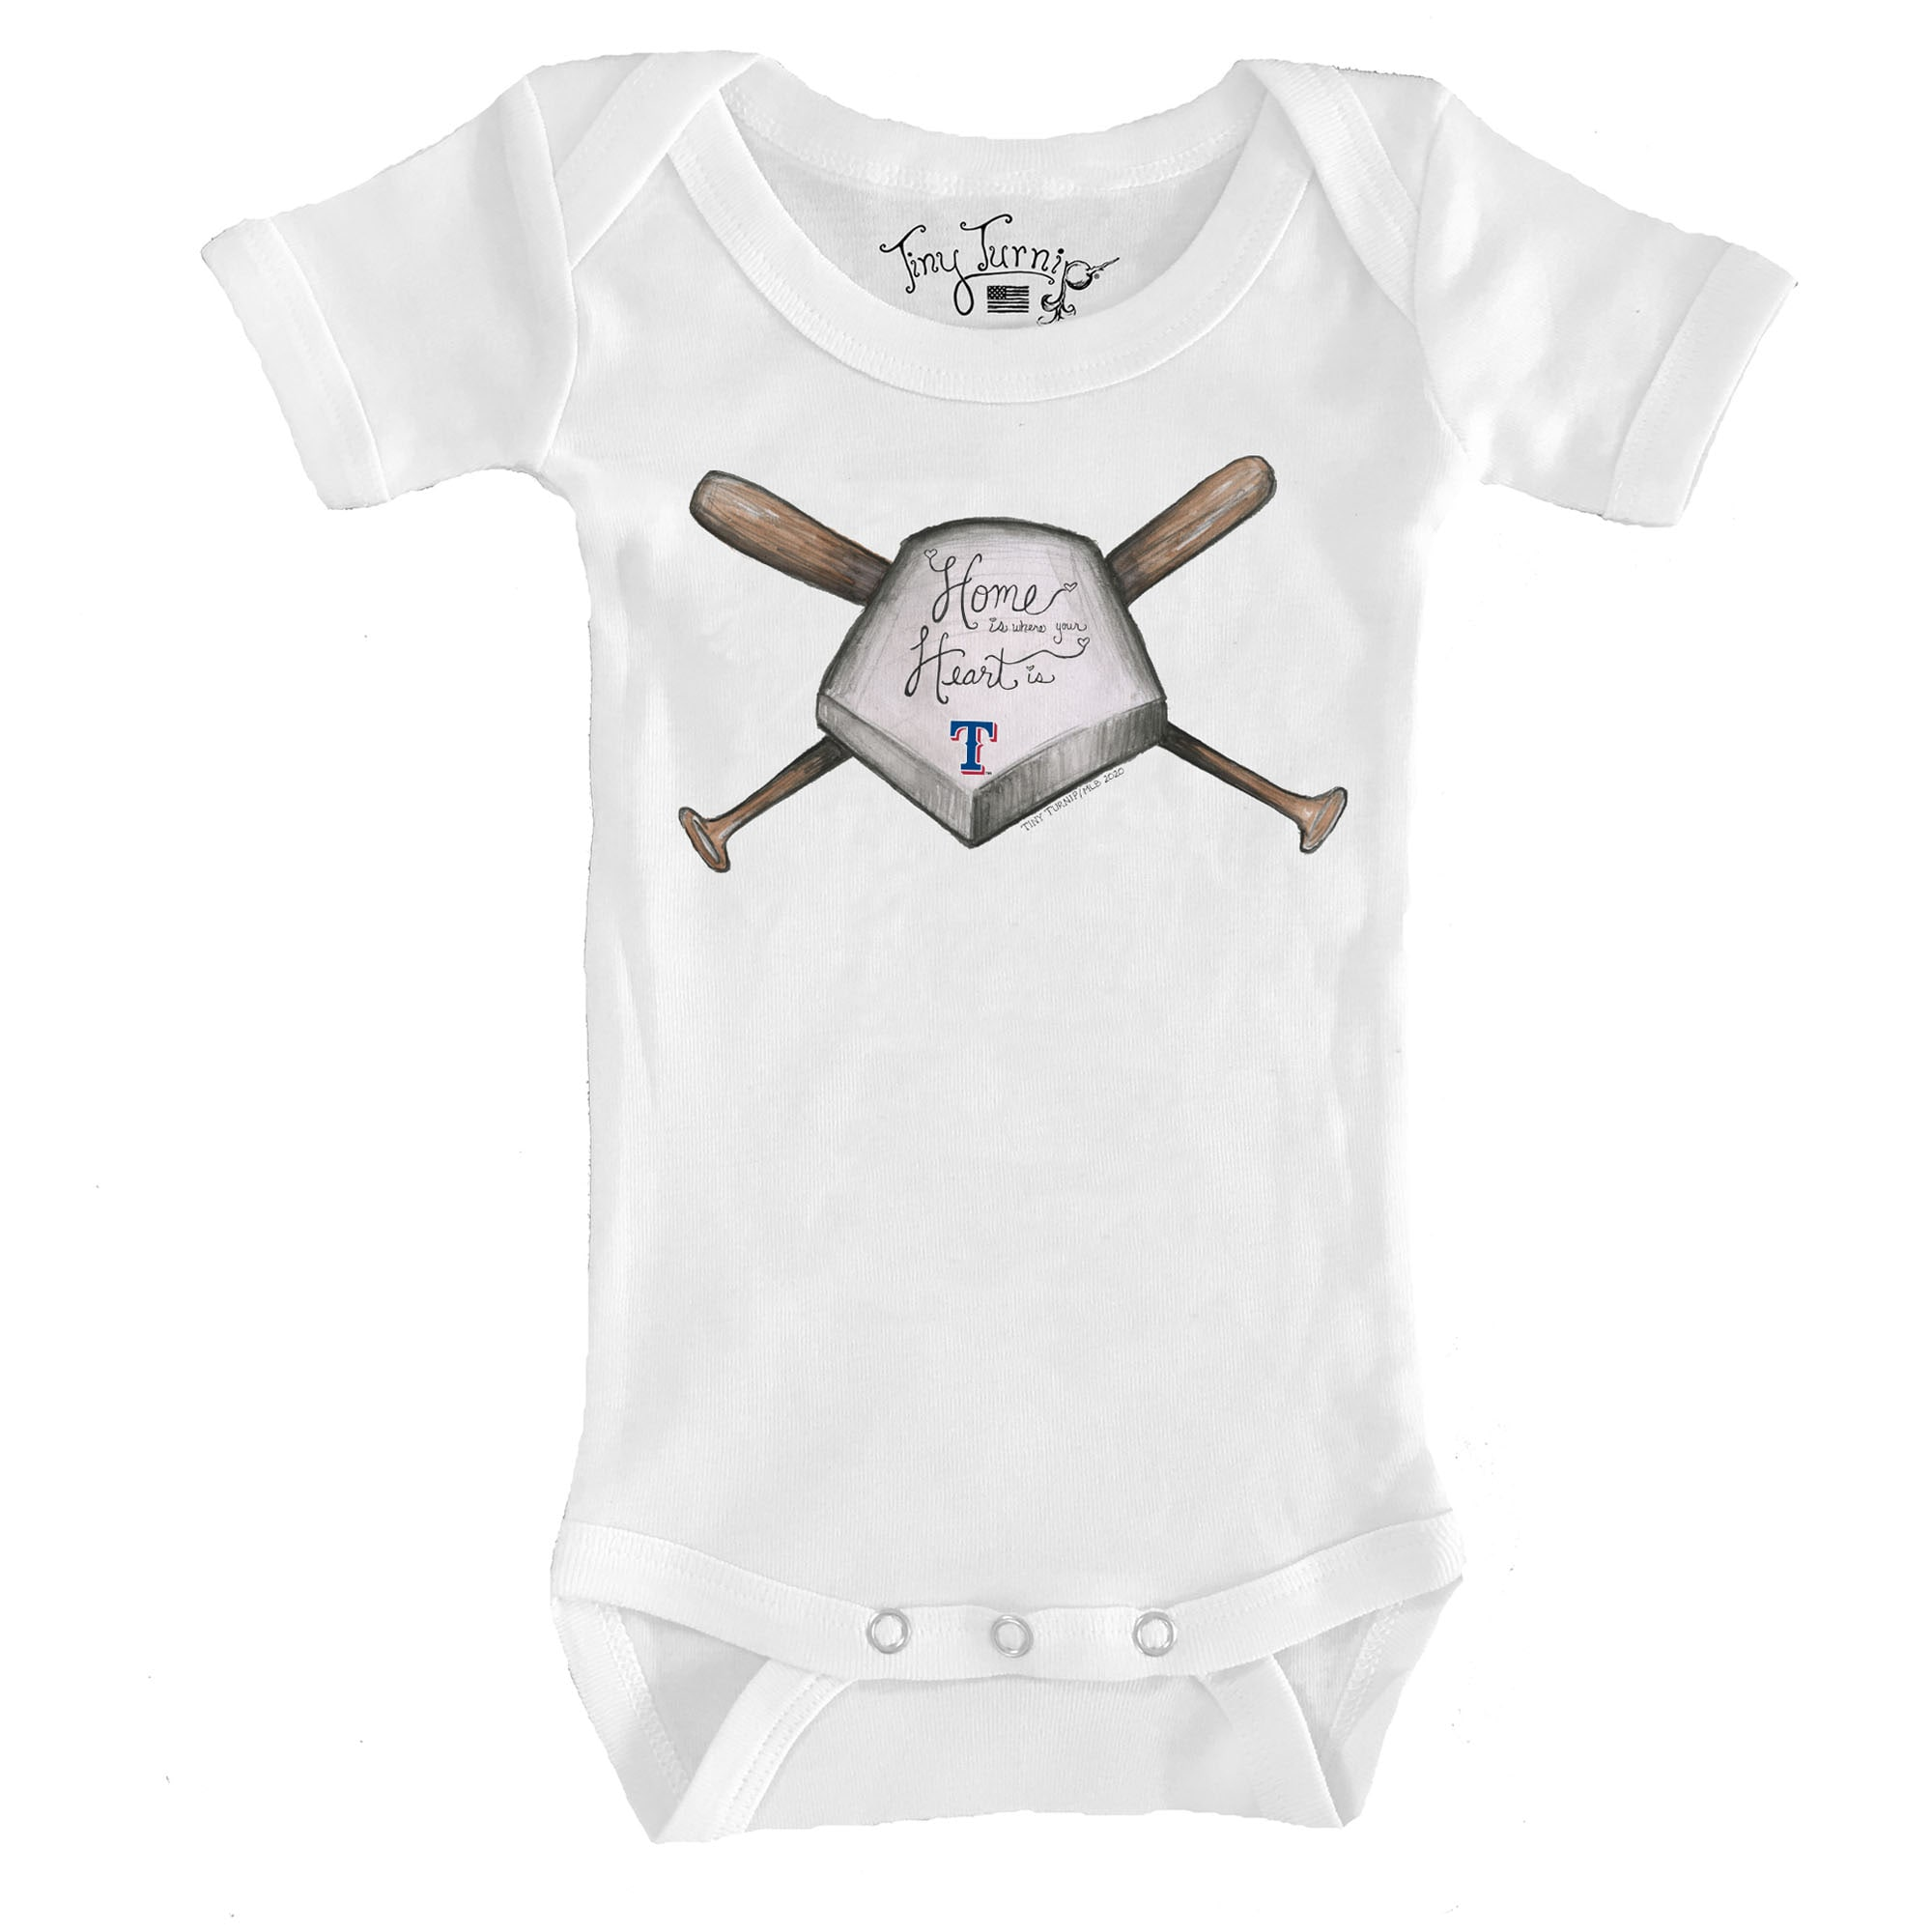 Texas Rangers Tiny Turnip Infant Home Is Where Your Heart Is Bodysuit - White